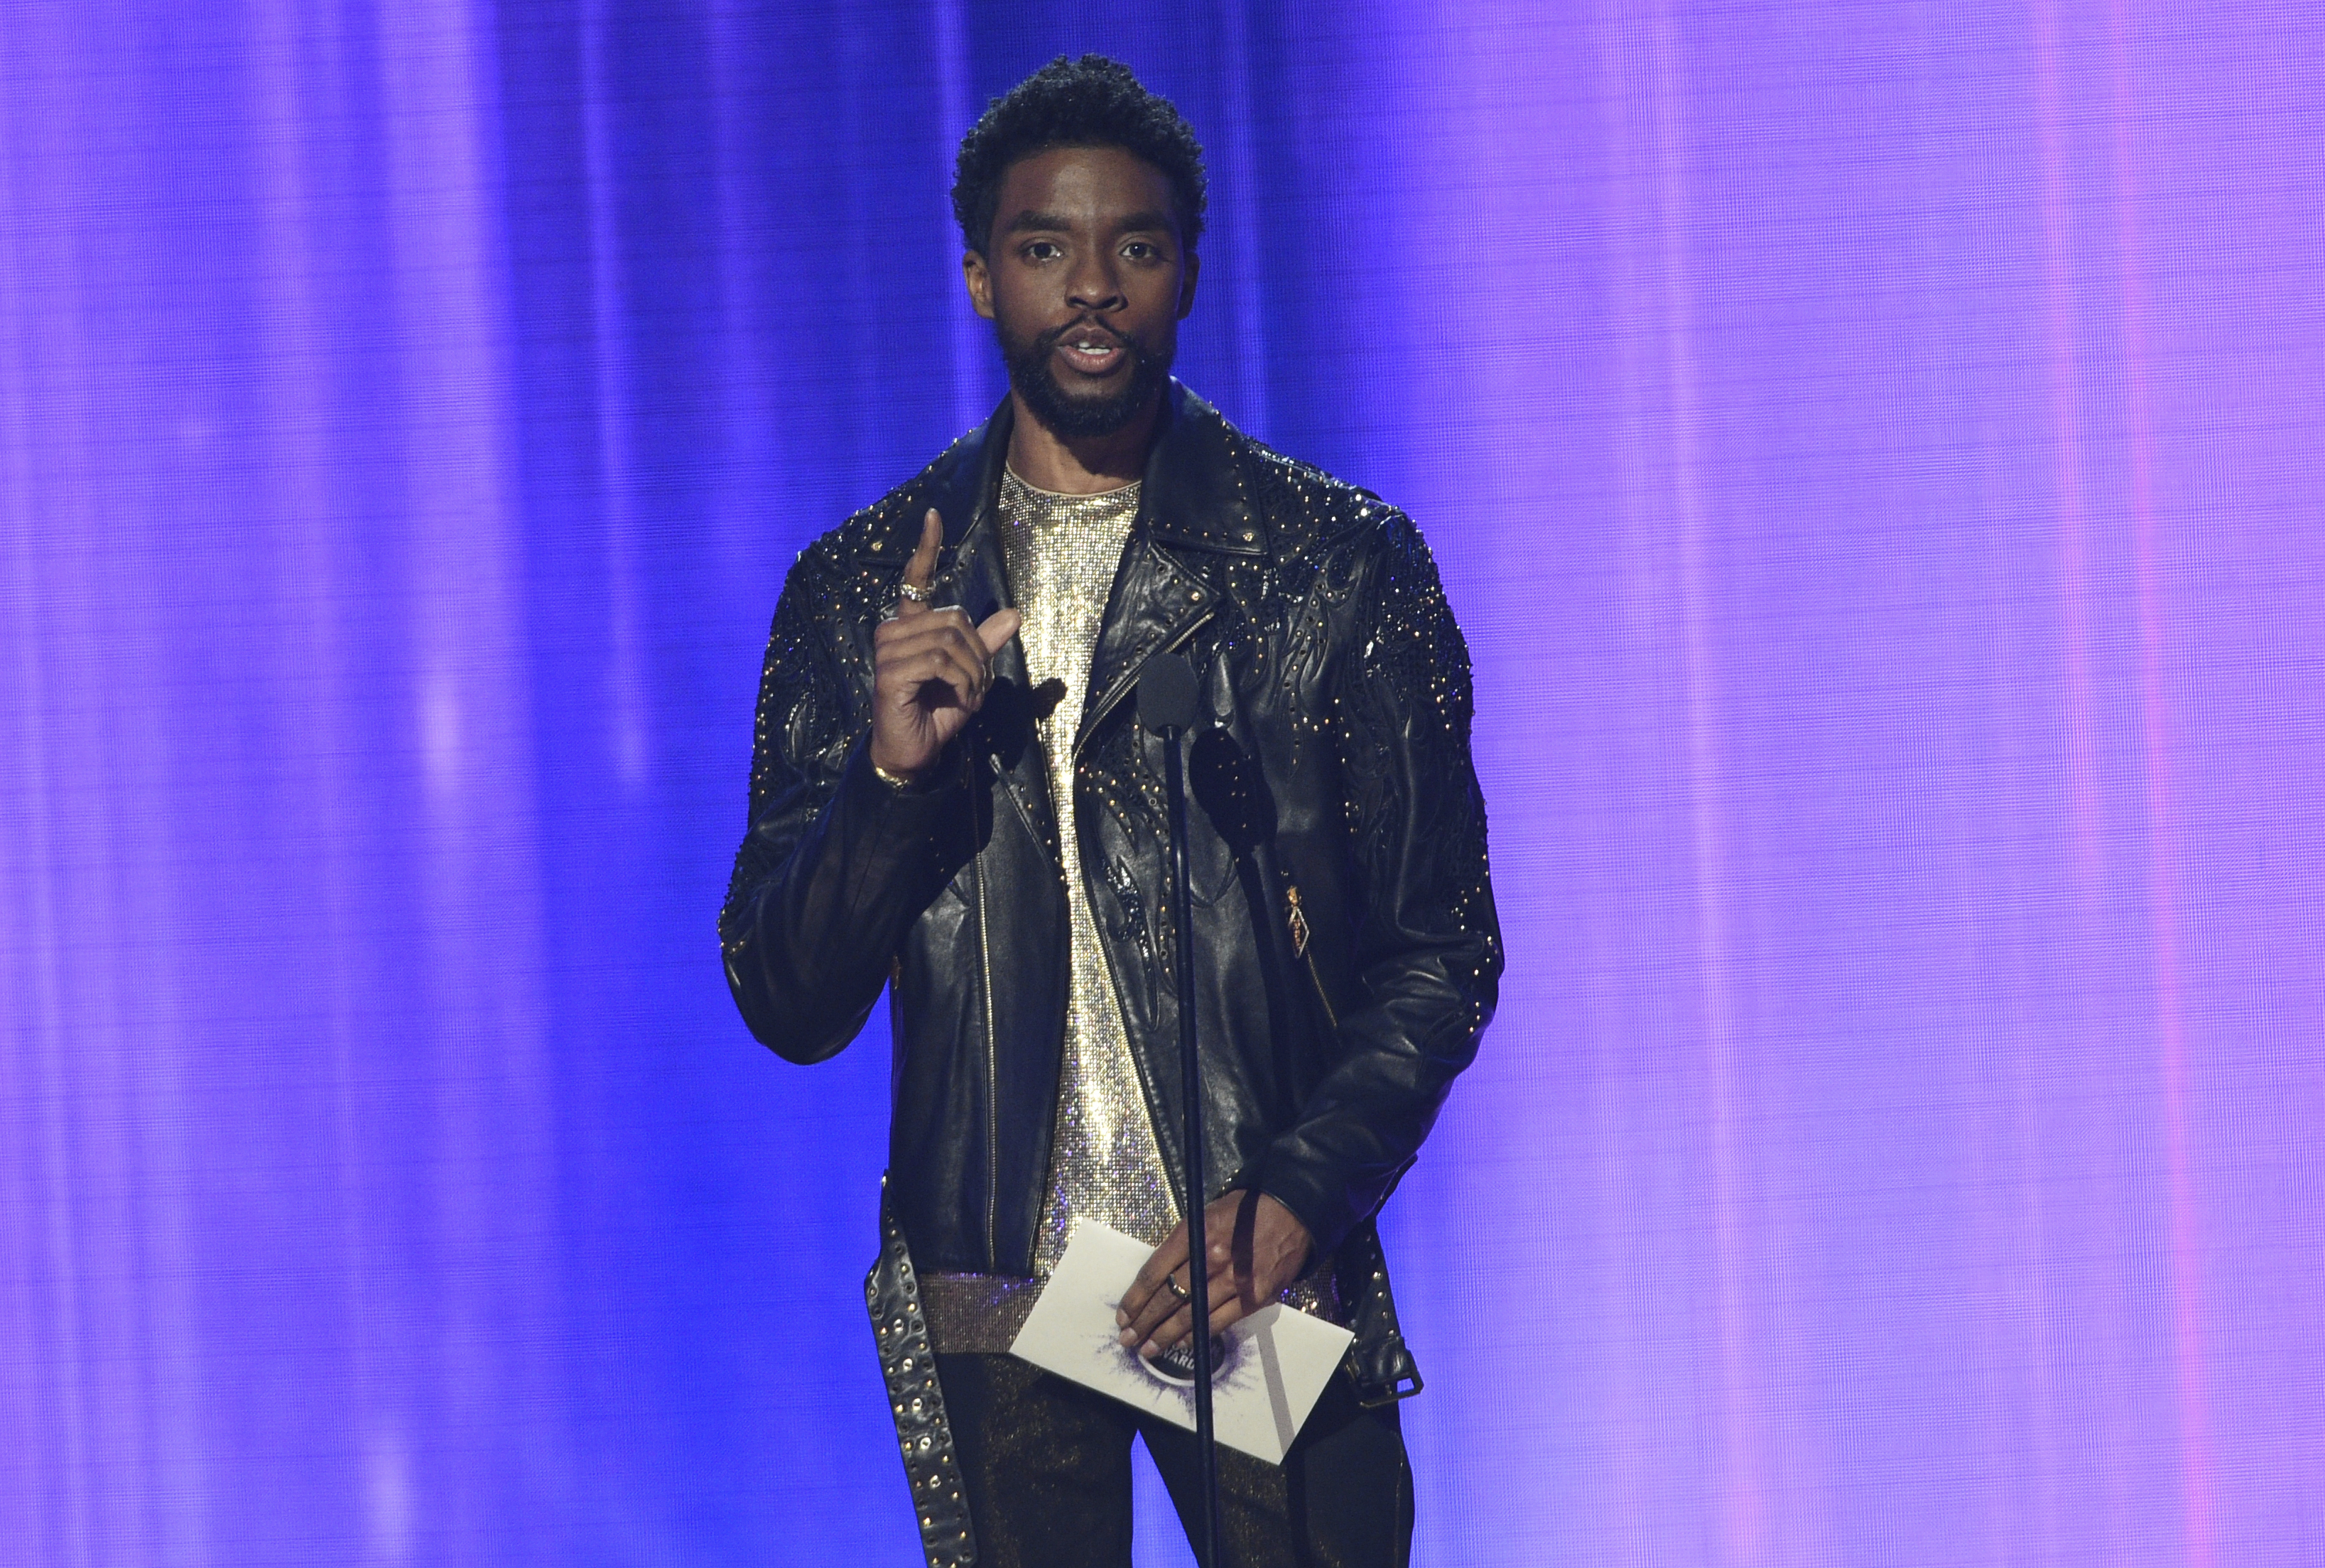 Chadwick Boseman presents the award for favorite alternative rock artist at the American Music Awards on Sunday, Nov. 24, 2019, at the Microsoft Theater in Los Angeles. (Photo by Chris Pizzello/Invision/AP)